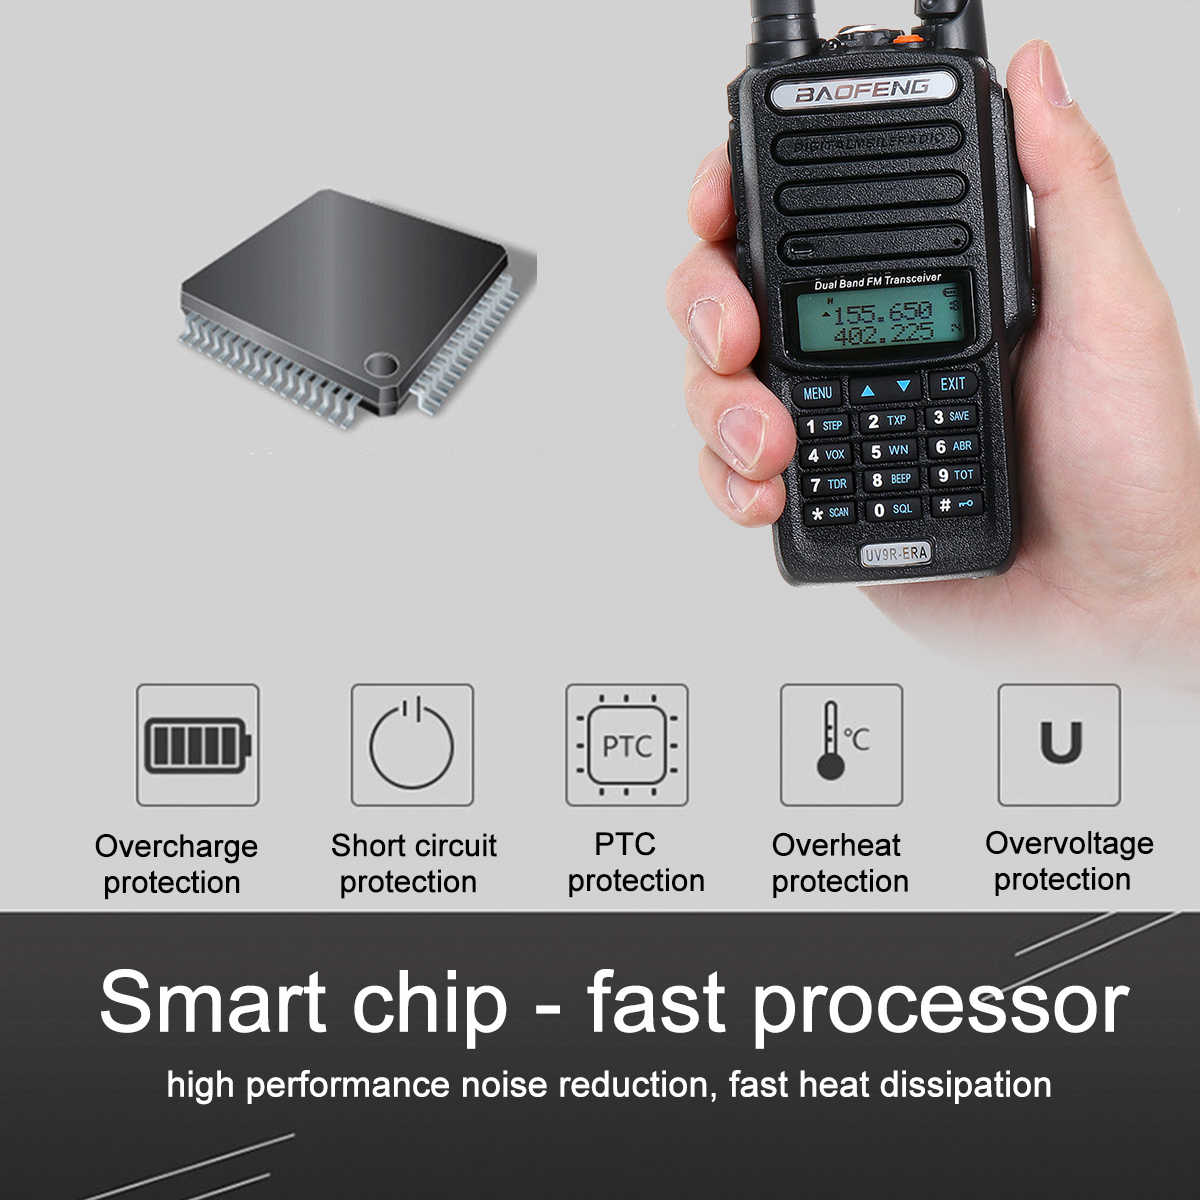 Baofeng UV9R-ERA Walkie Talkie Professional Radio Station Transceiver VHF UHF Portable Radio 15km Talk-Range 9500mah